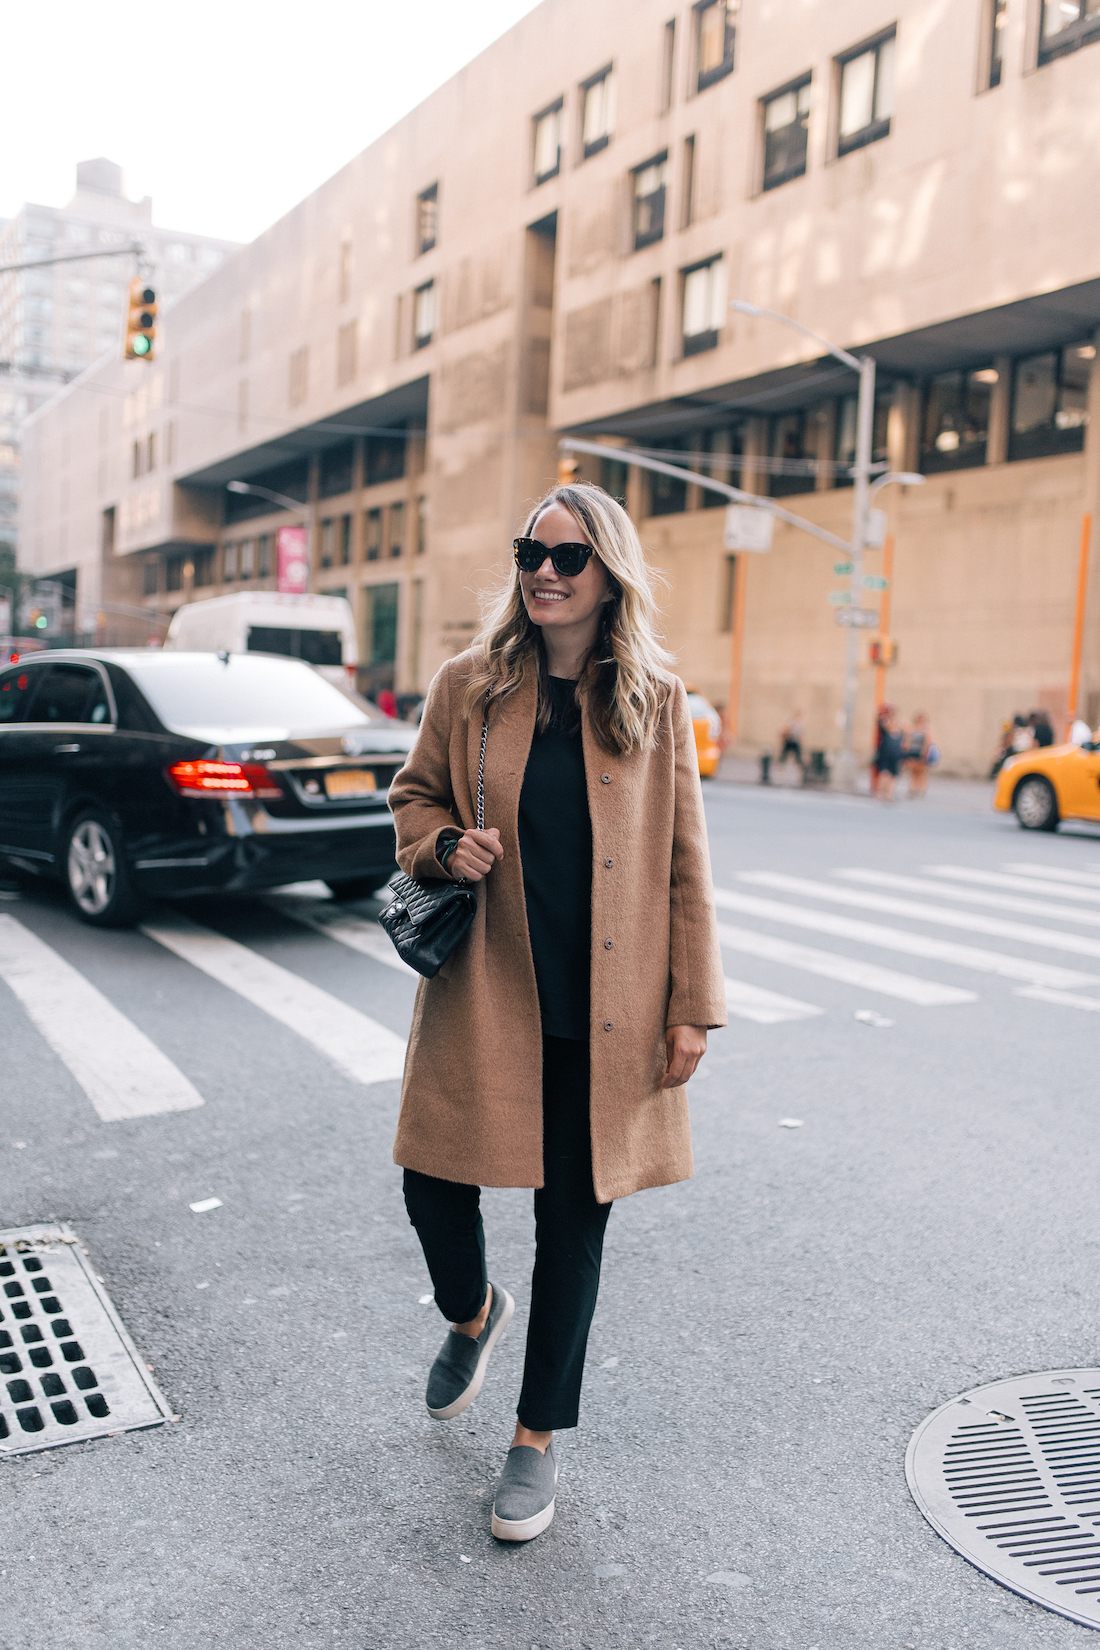 Outfit Details: Eileen Fisher Shell //Eileen Fisher Slim Fit Pants// Vince Sneakers// Eileen Fisher Coat// Vintage Chanel Purse// Krewe Sunglasses